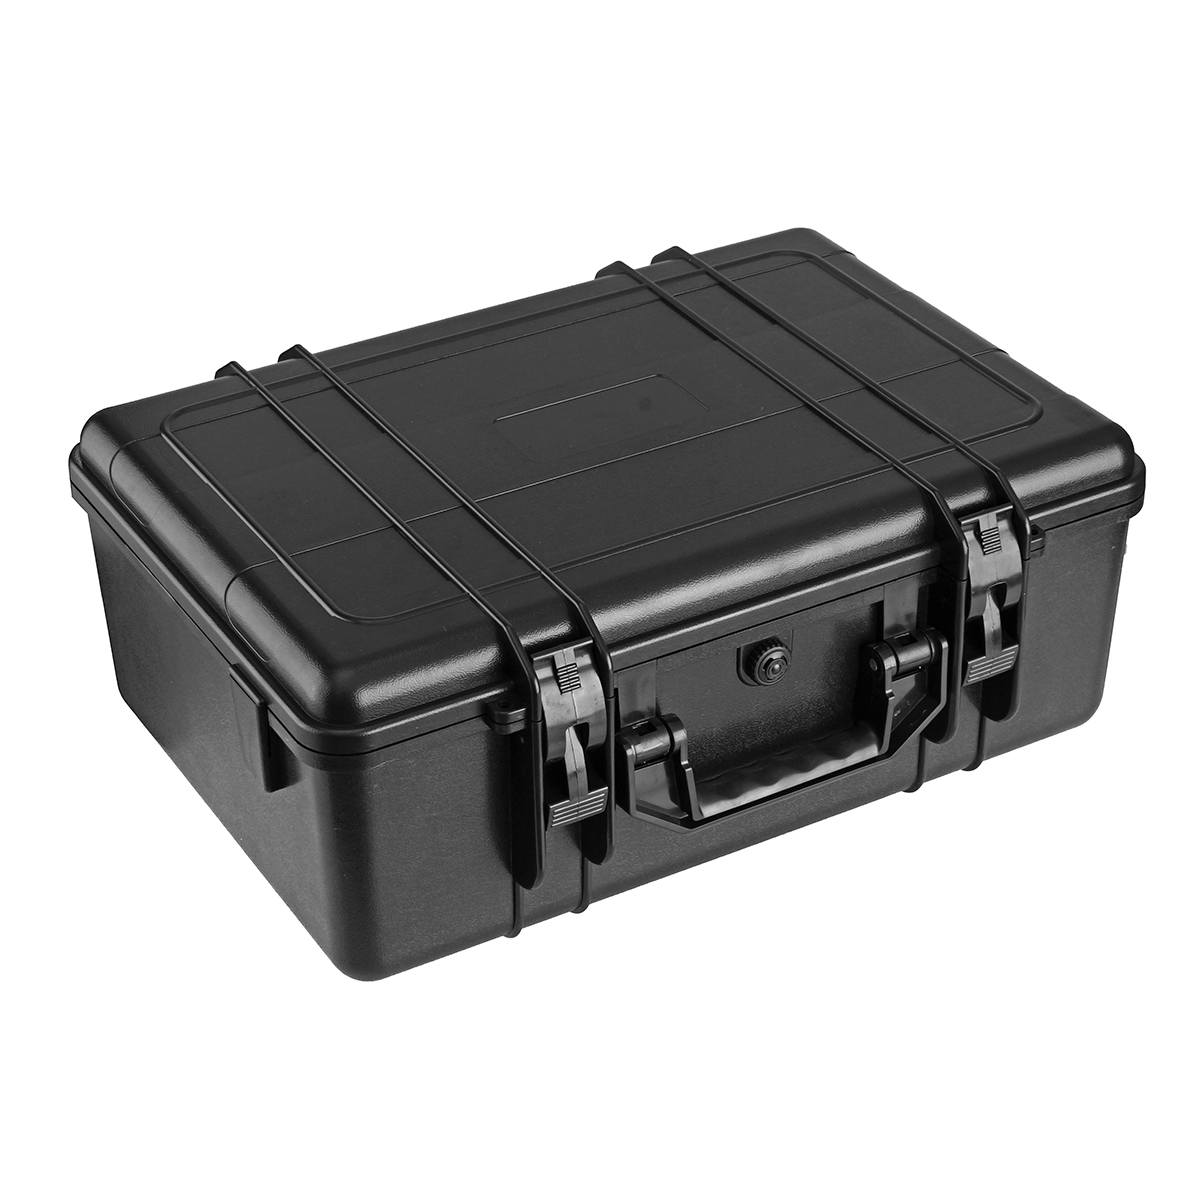 Waterproof Hard Carry Case Flight Case Watertight Photography Hardware Tool Kits Storage Box Safety Protector Impact Resistant